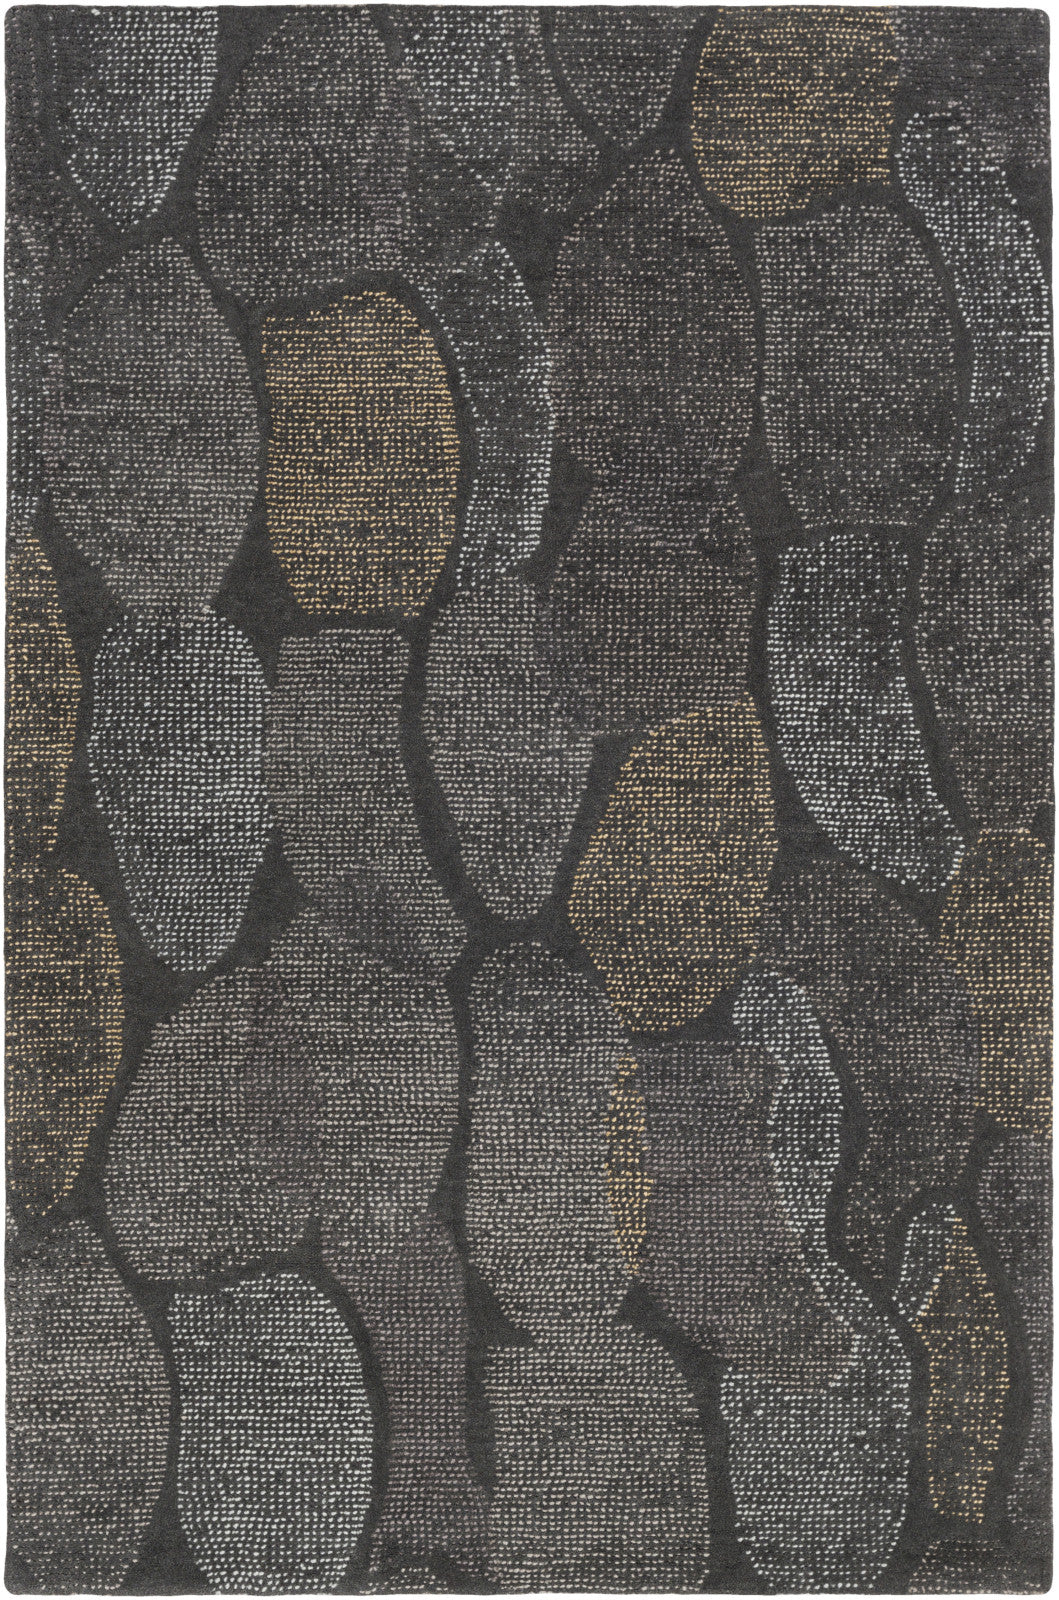 Melody MDY-2011 Gray Area Rug by Surya